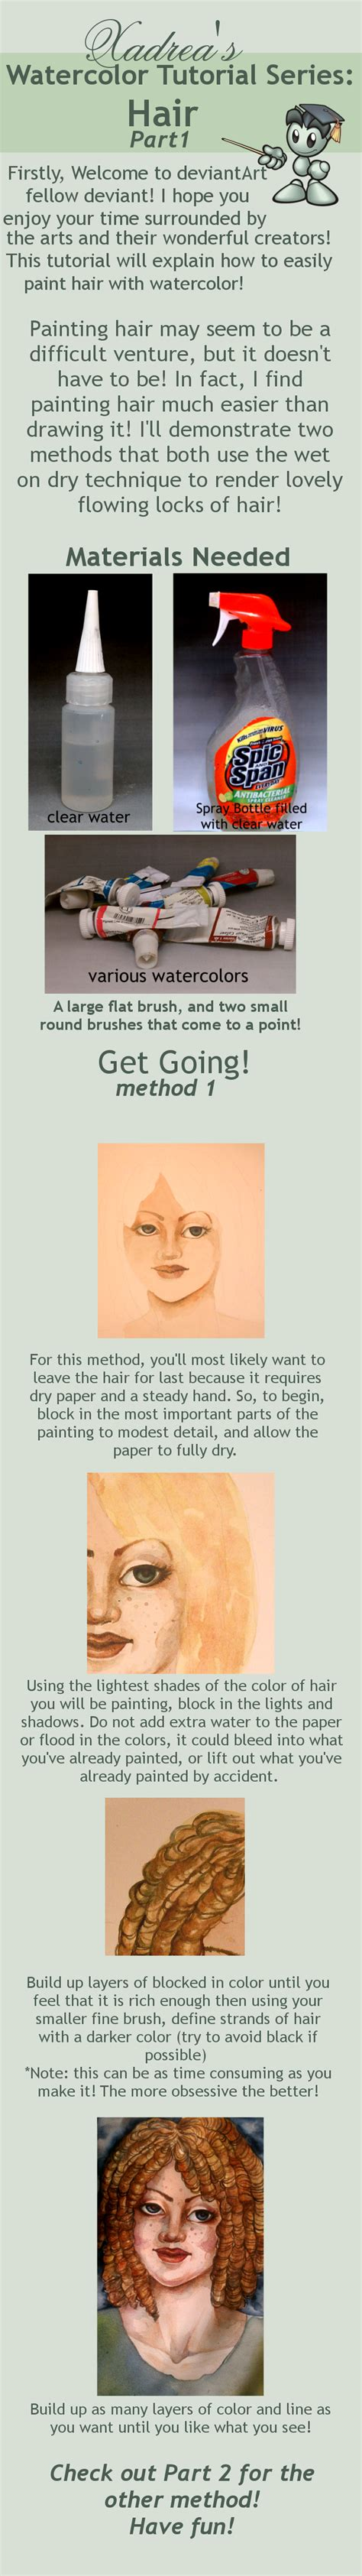 watercolor tutorial part 1 watercolor tutorial hair part 1 by xadrea on deviantart